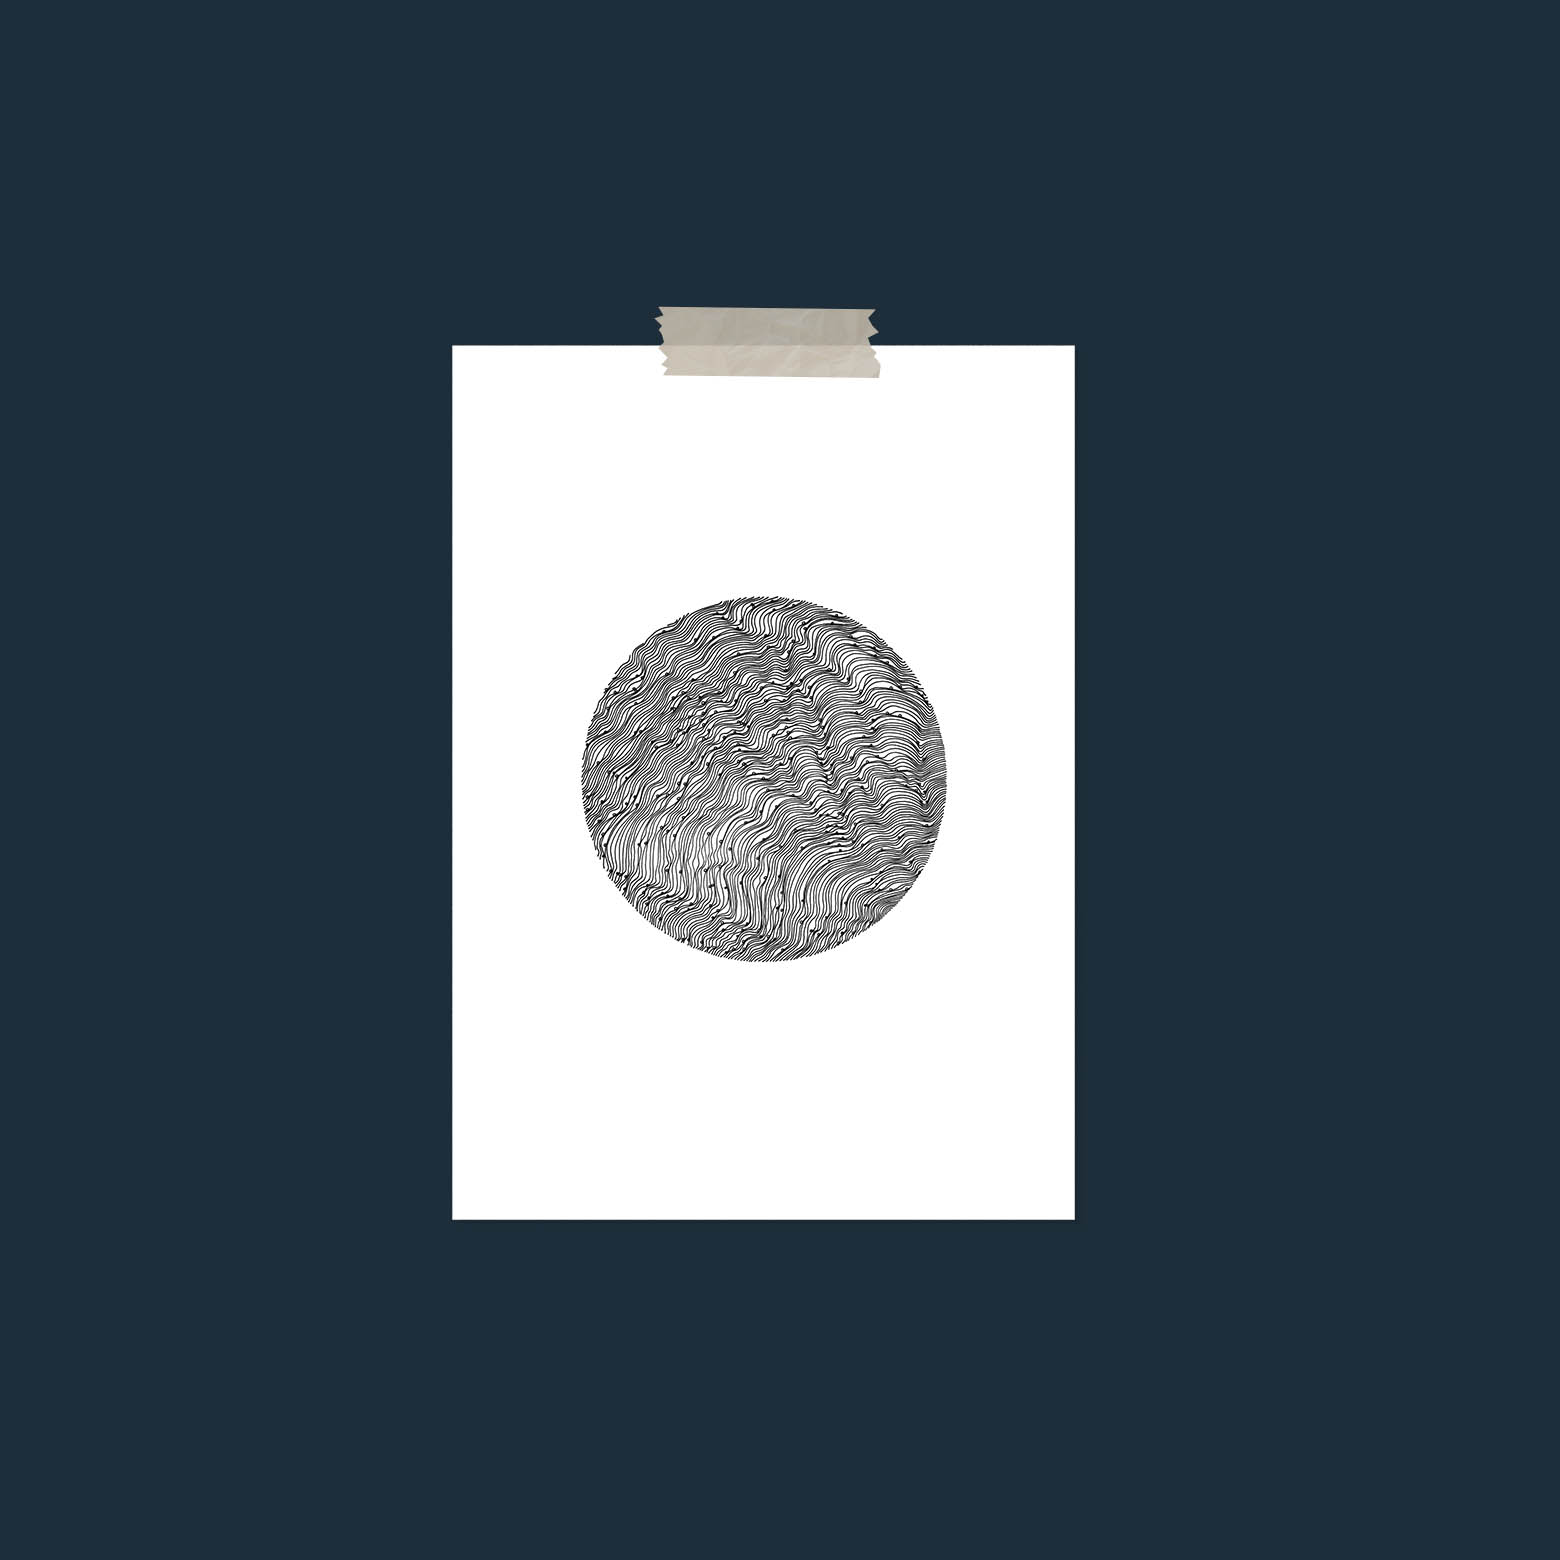 ILLUSTRATED CIRCLE - This large print is A1 in size can make an excellent statement in a modern minimalist home. At first this print appears simple and will reveal complexities as you get up closer.